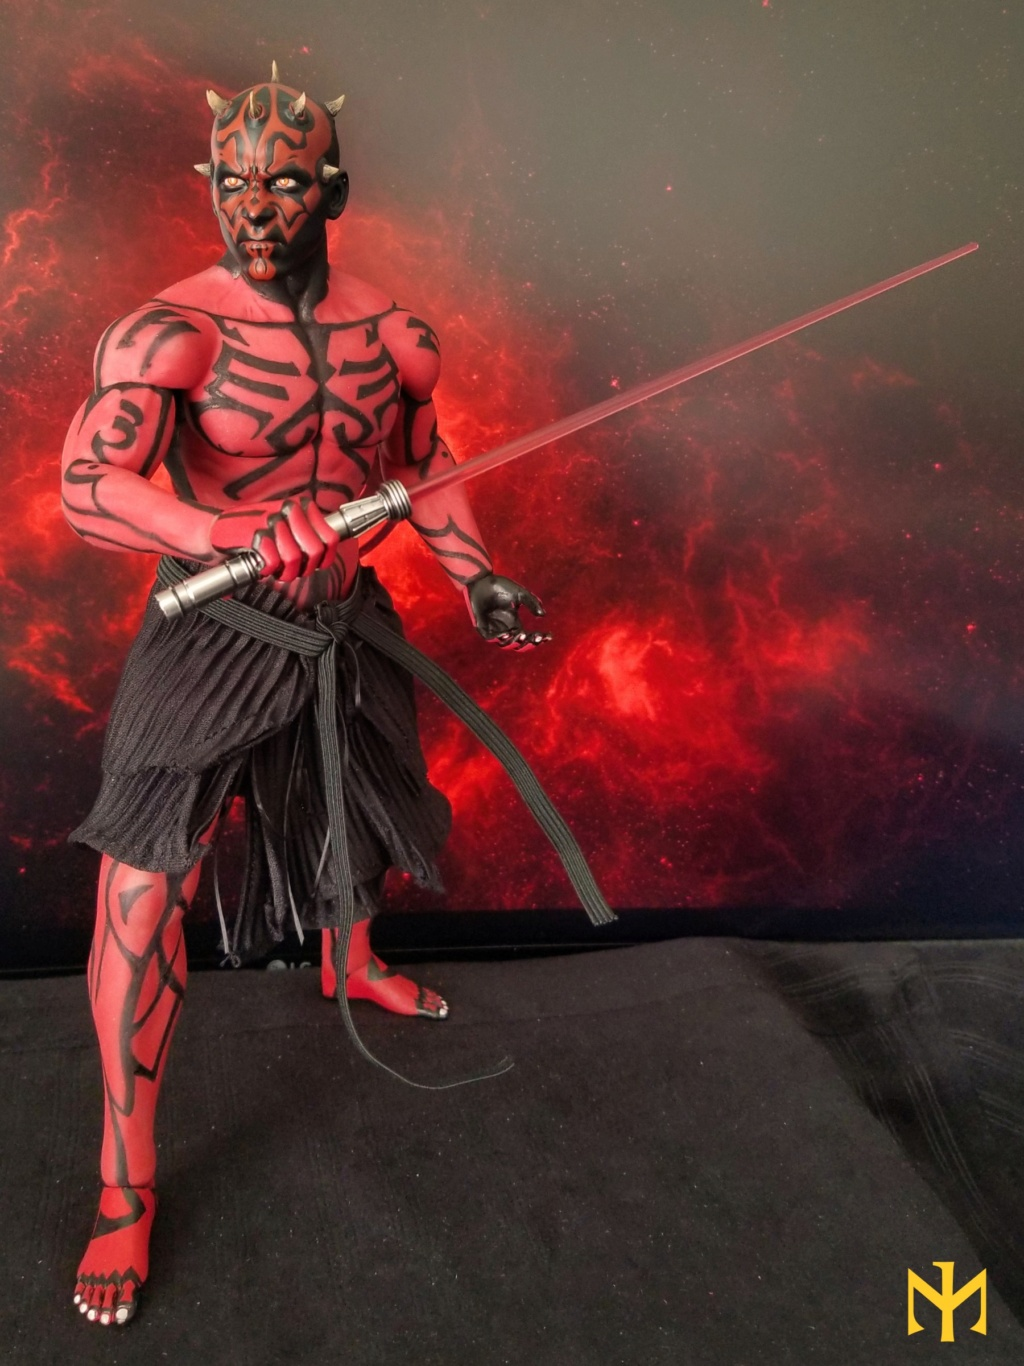 STAR WARS Updated Darth Maul Custom Part IV Maul 2.0 (photo heavy) Swdmt017